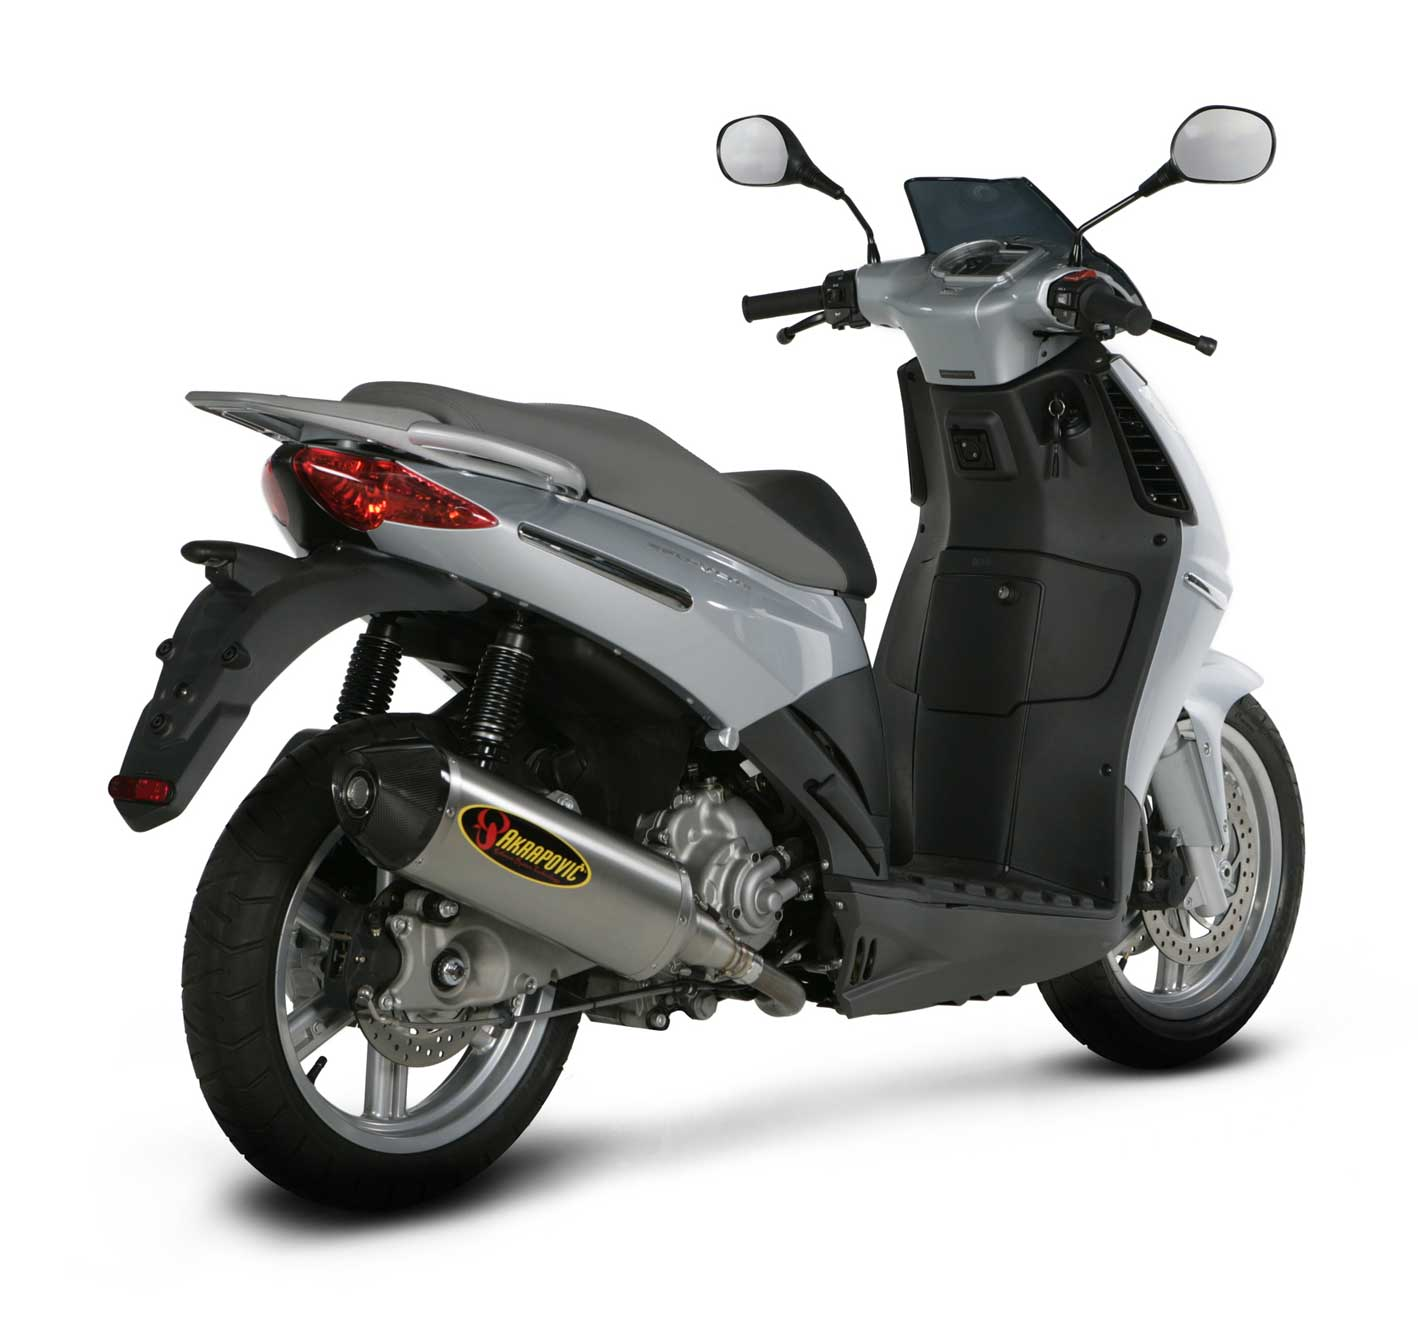 aprilia aprilia sportcity one 125 4t moto zombdrive com. Black Bedroom Furniture Sets. Home Design Ideas